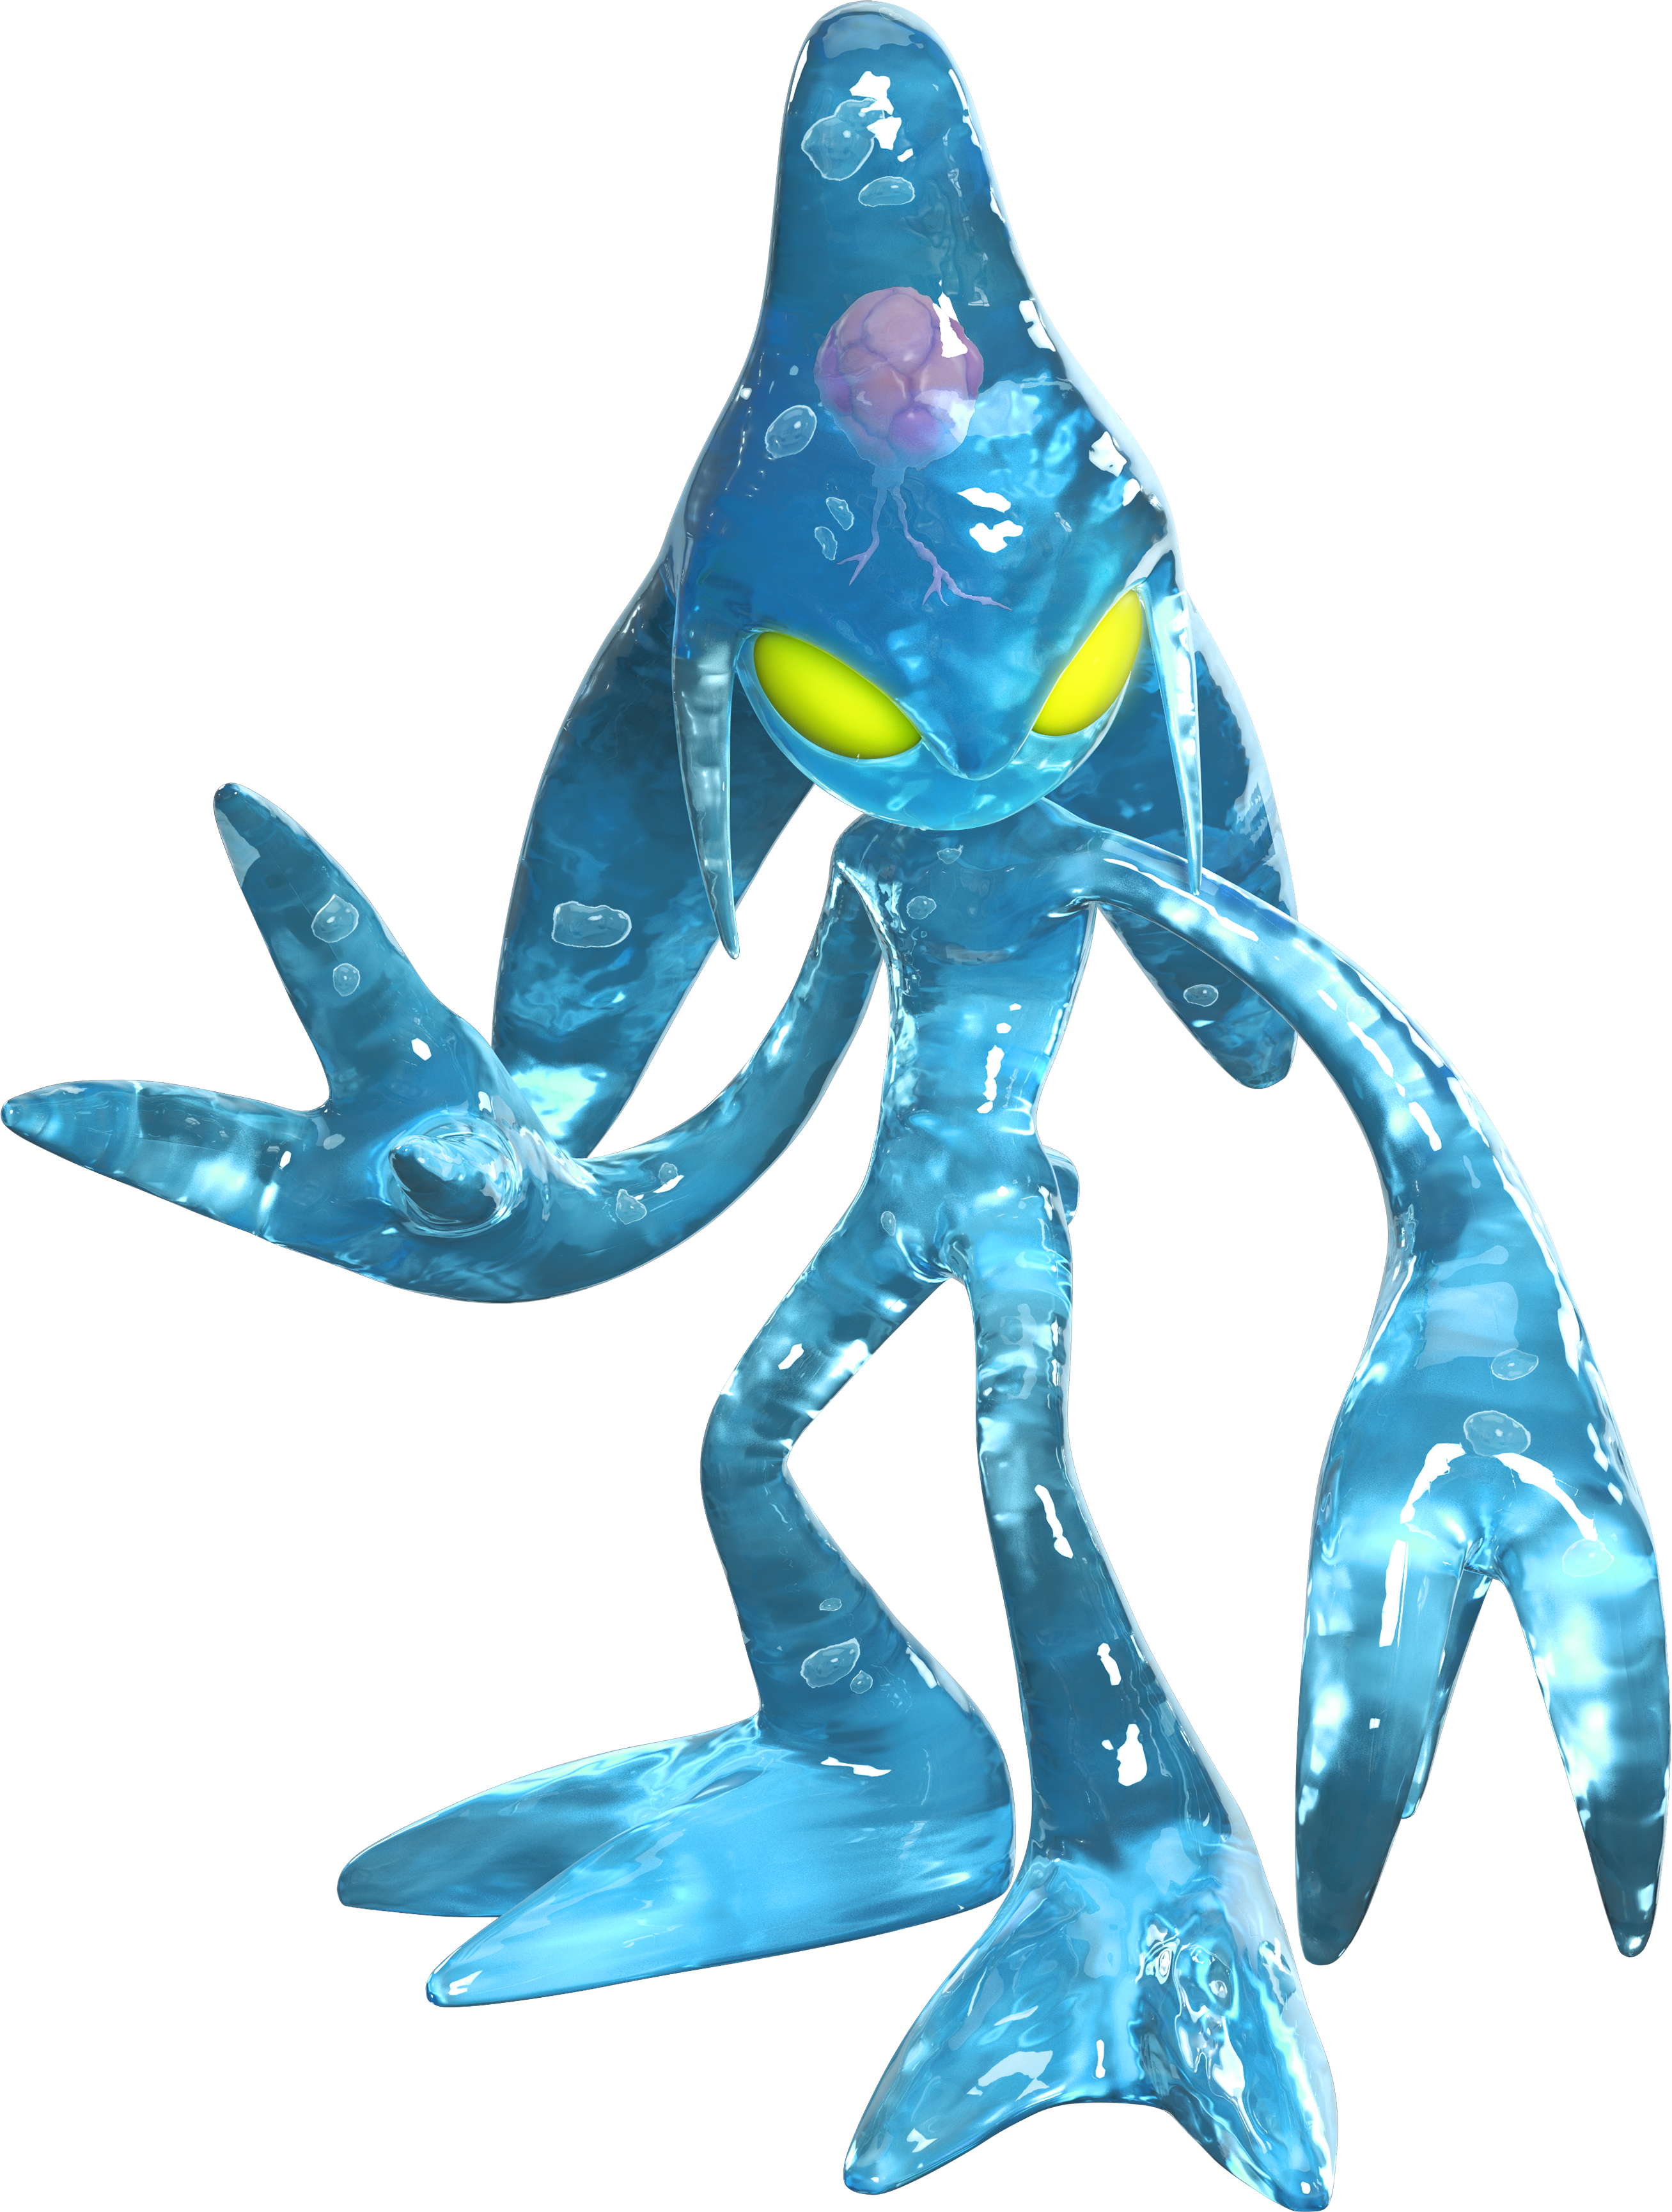 Transparent chao translucent. Chaos sonic news network